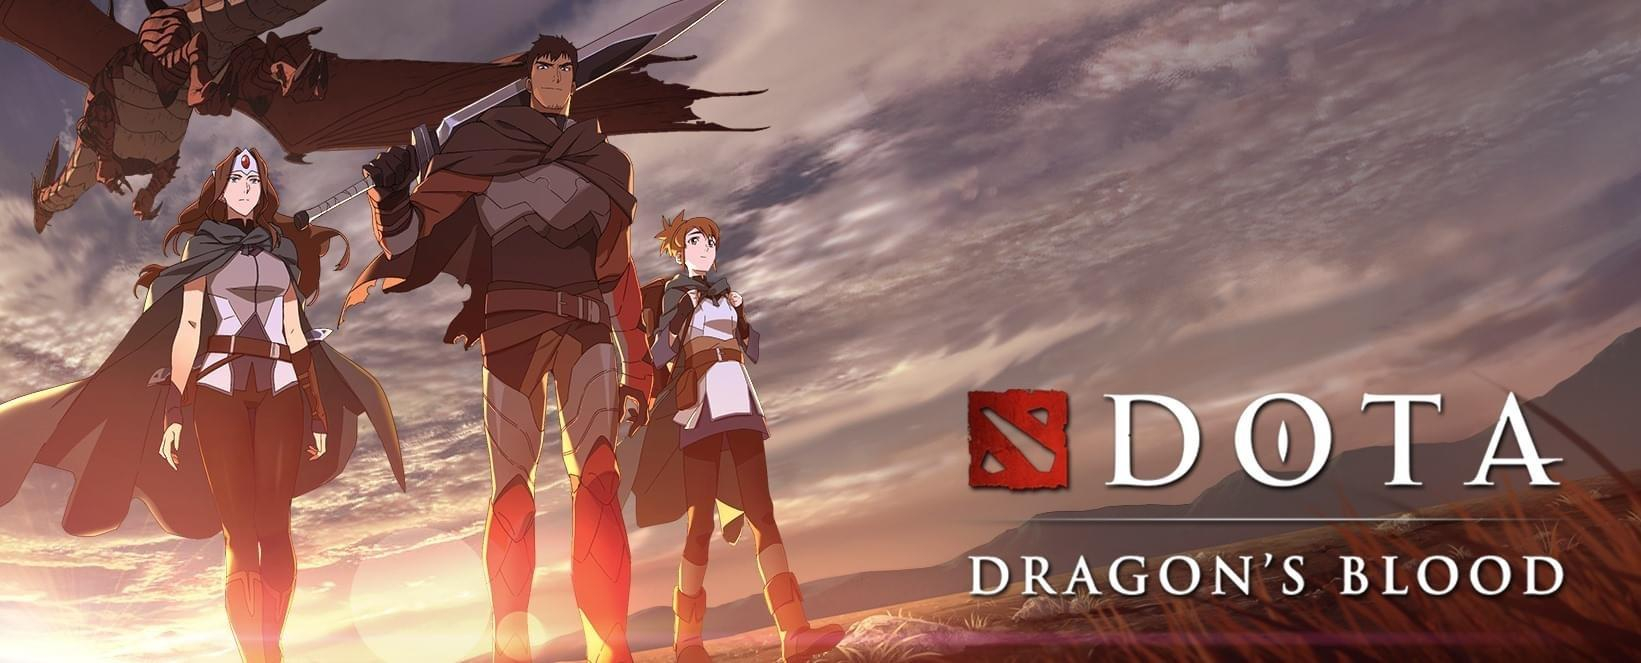 Dota: Dragon's Blood Season 2 Release Date, Plot Expectations and All You Need To Know